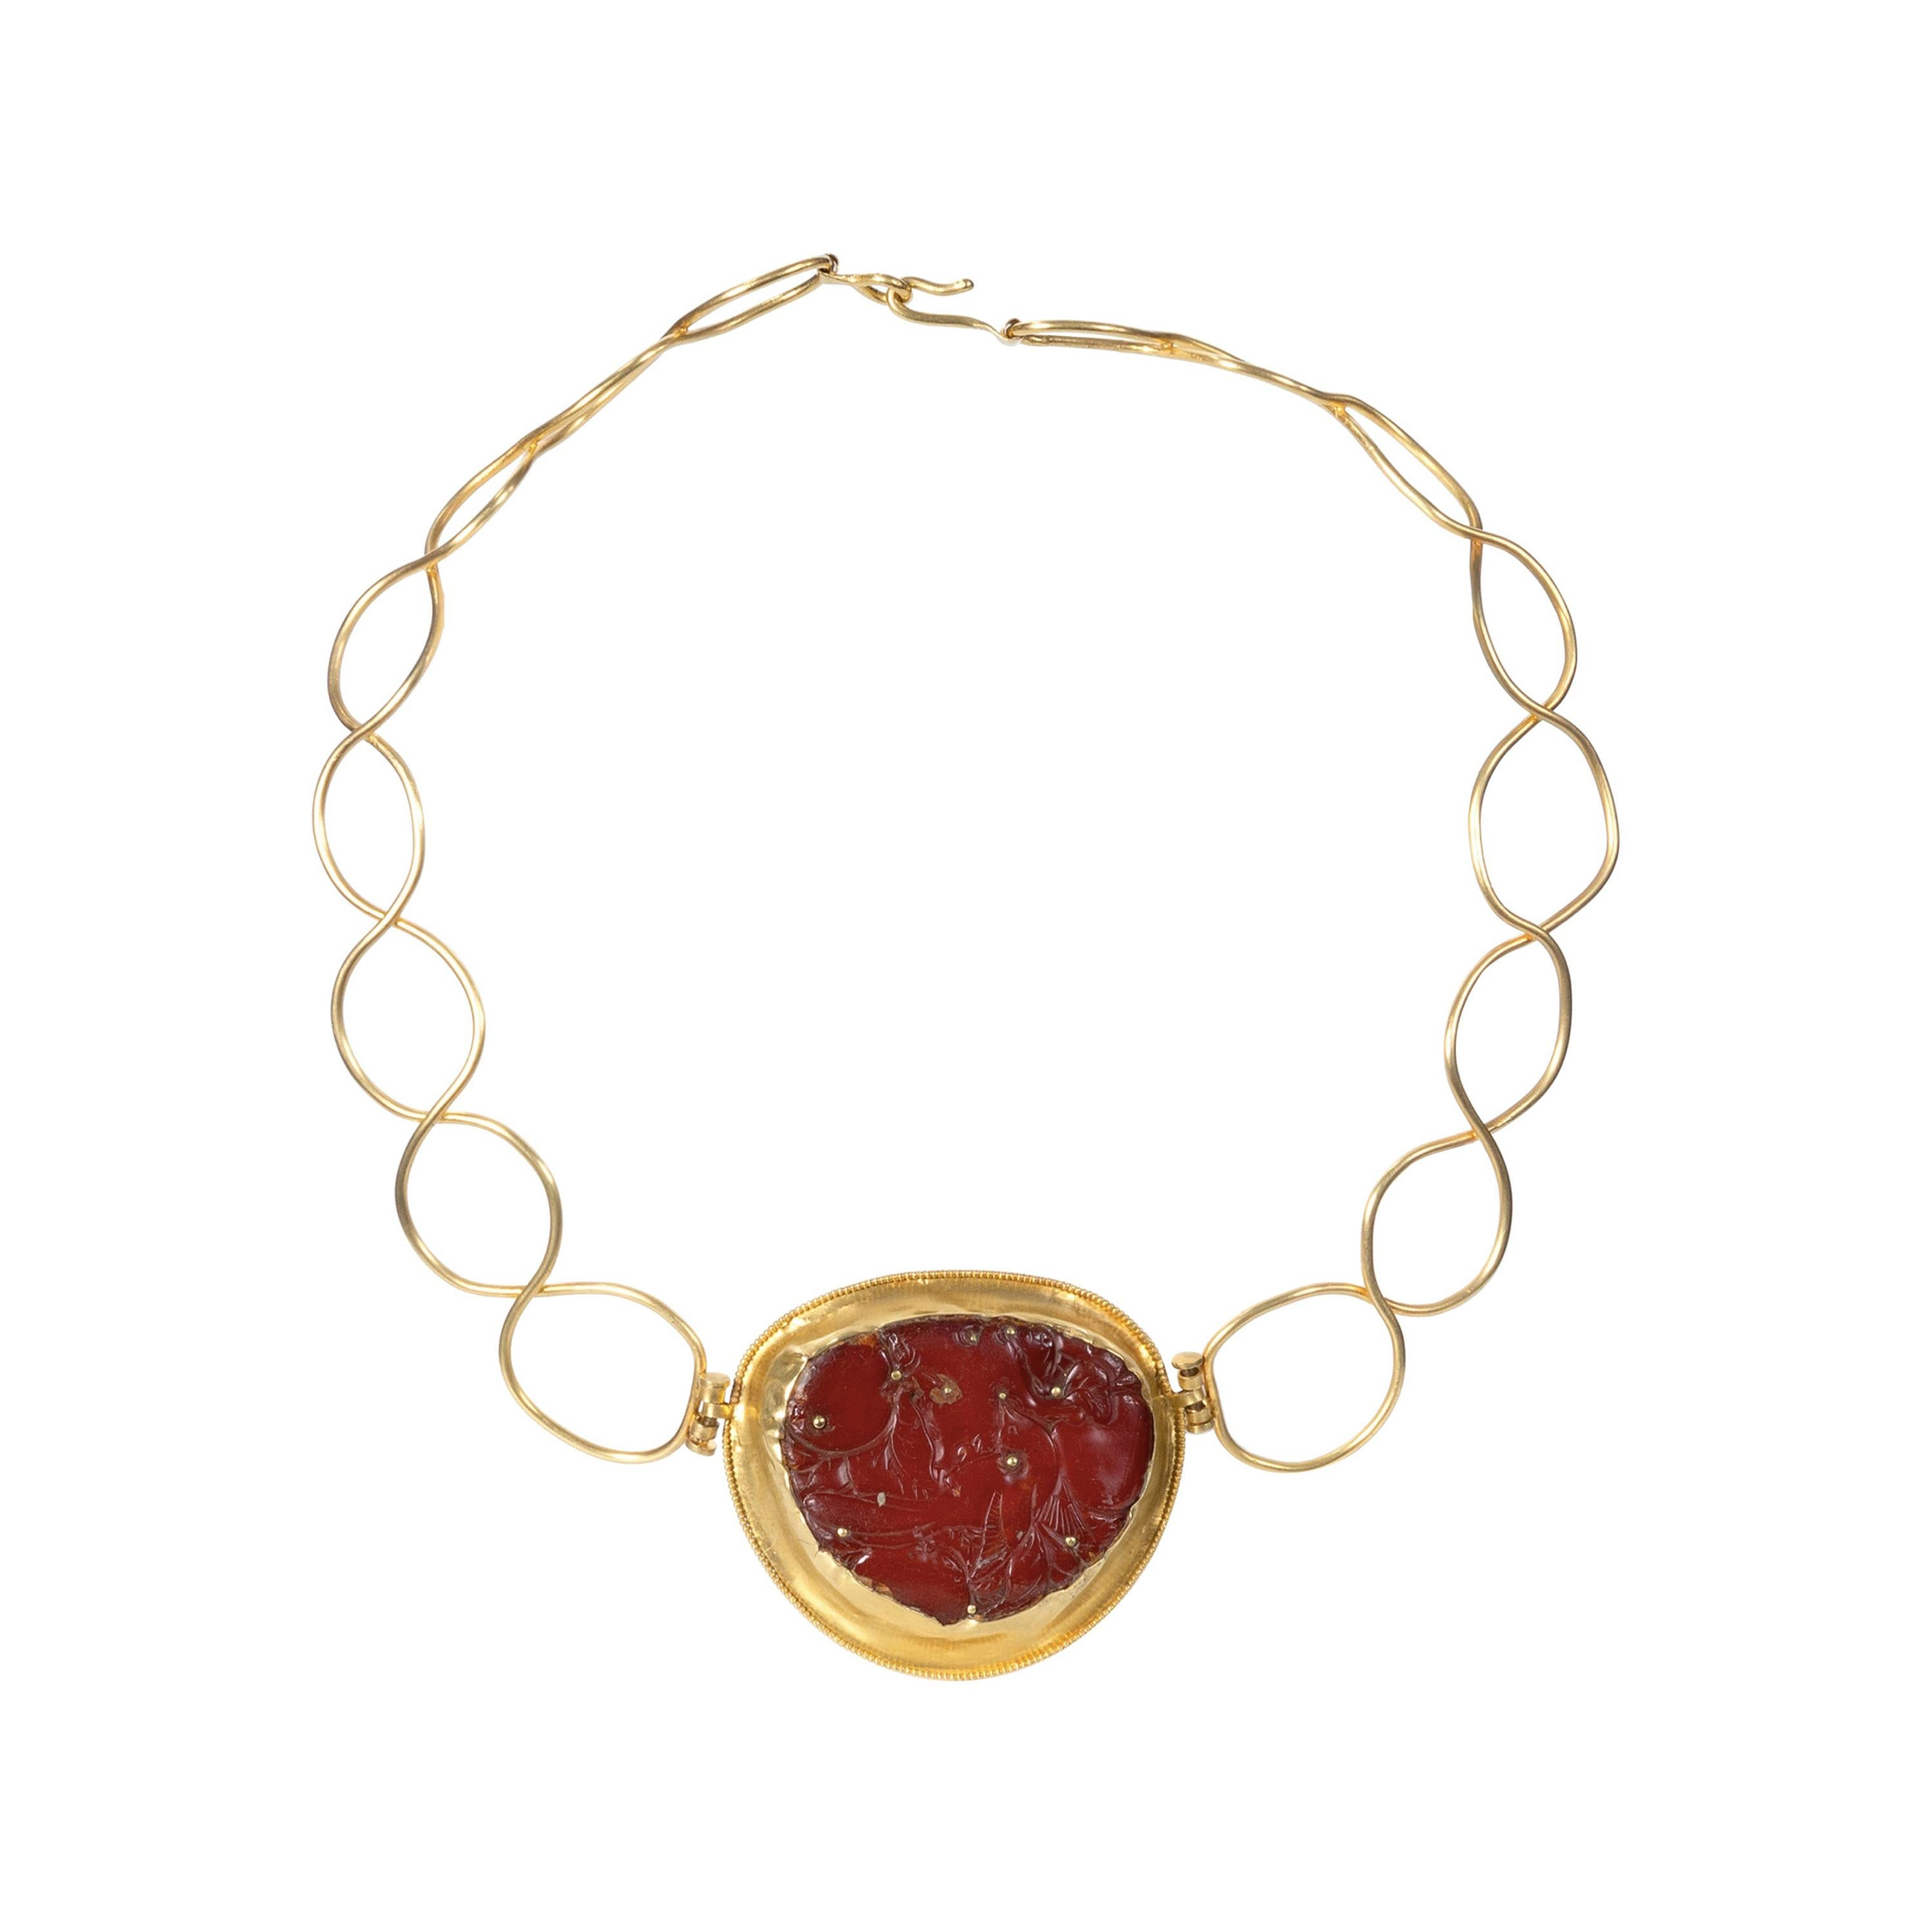 22 Karat Gold, Baltic Amber Carved in 18th Century-China Torc